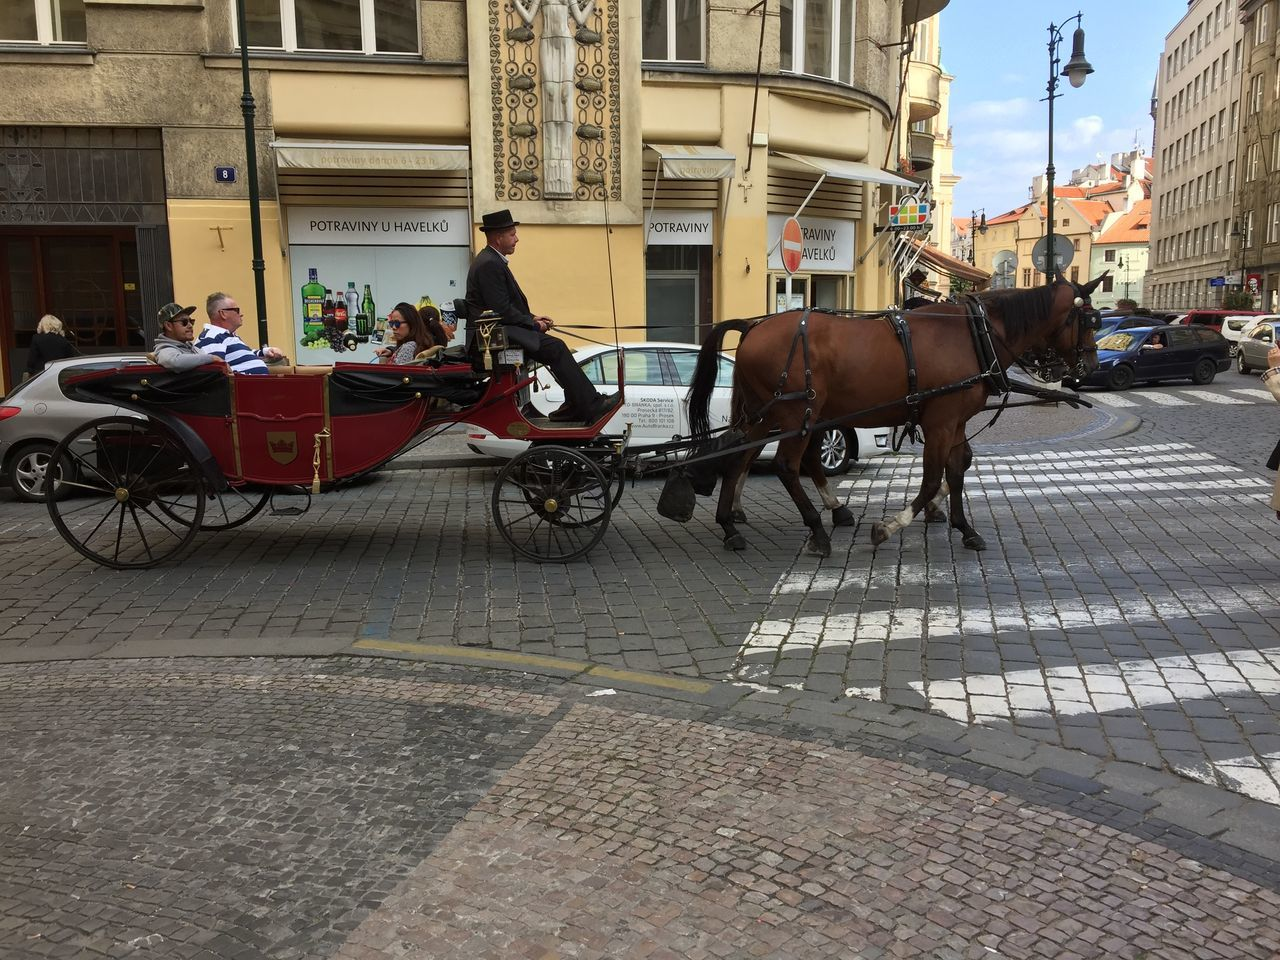 Architecture Building Exterior Built Structure Carriage City Day Domestic Animals Herbivorous Horse Horse Cart Horsedrawn Livestock Mammal Men Mode Of Transport One Animal Outdoors Street Transportation Working Animal